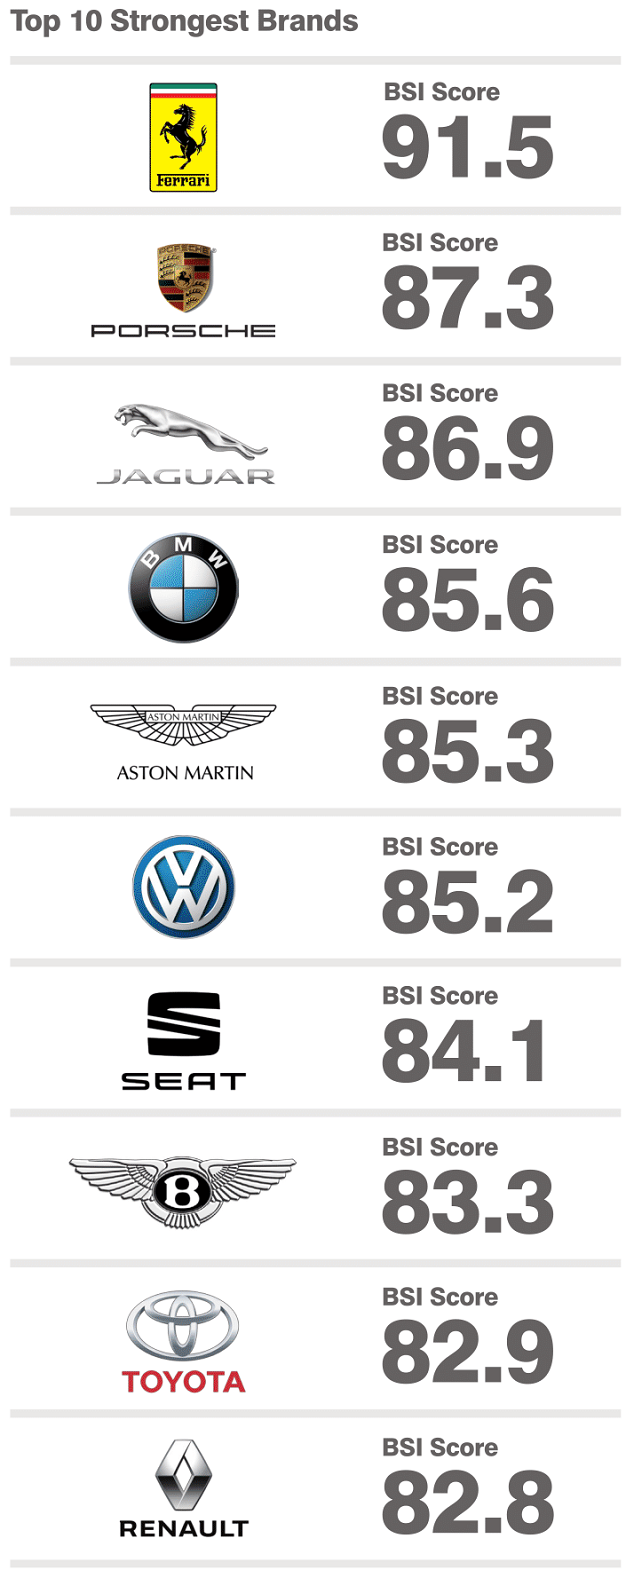 Top 10 Most Valuable Car Brands Mercedes Takes Pole Position Tesla